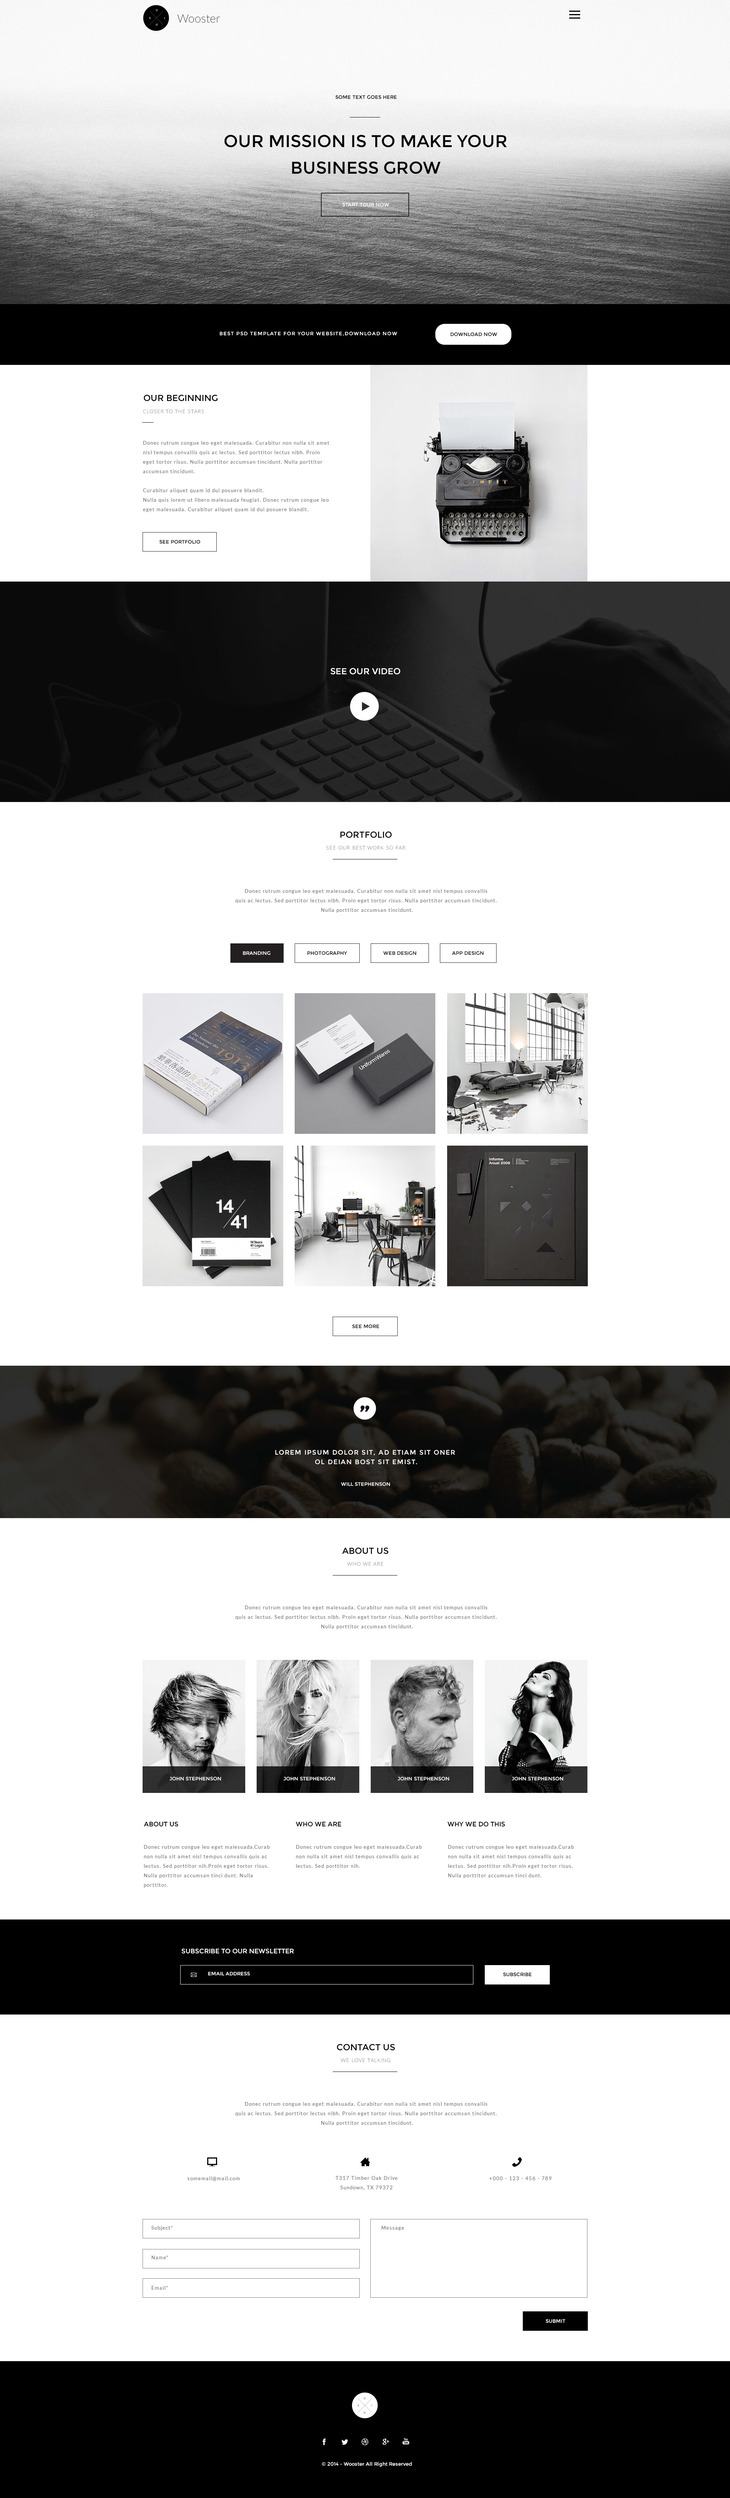 Wooster - Free Bootstrap Onepage Theme - graphberry.com